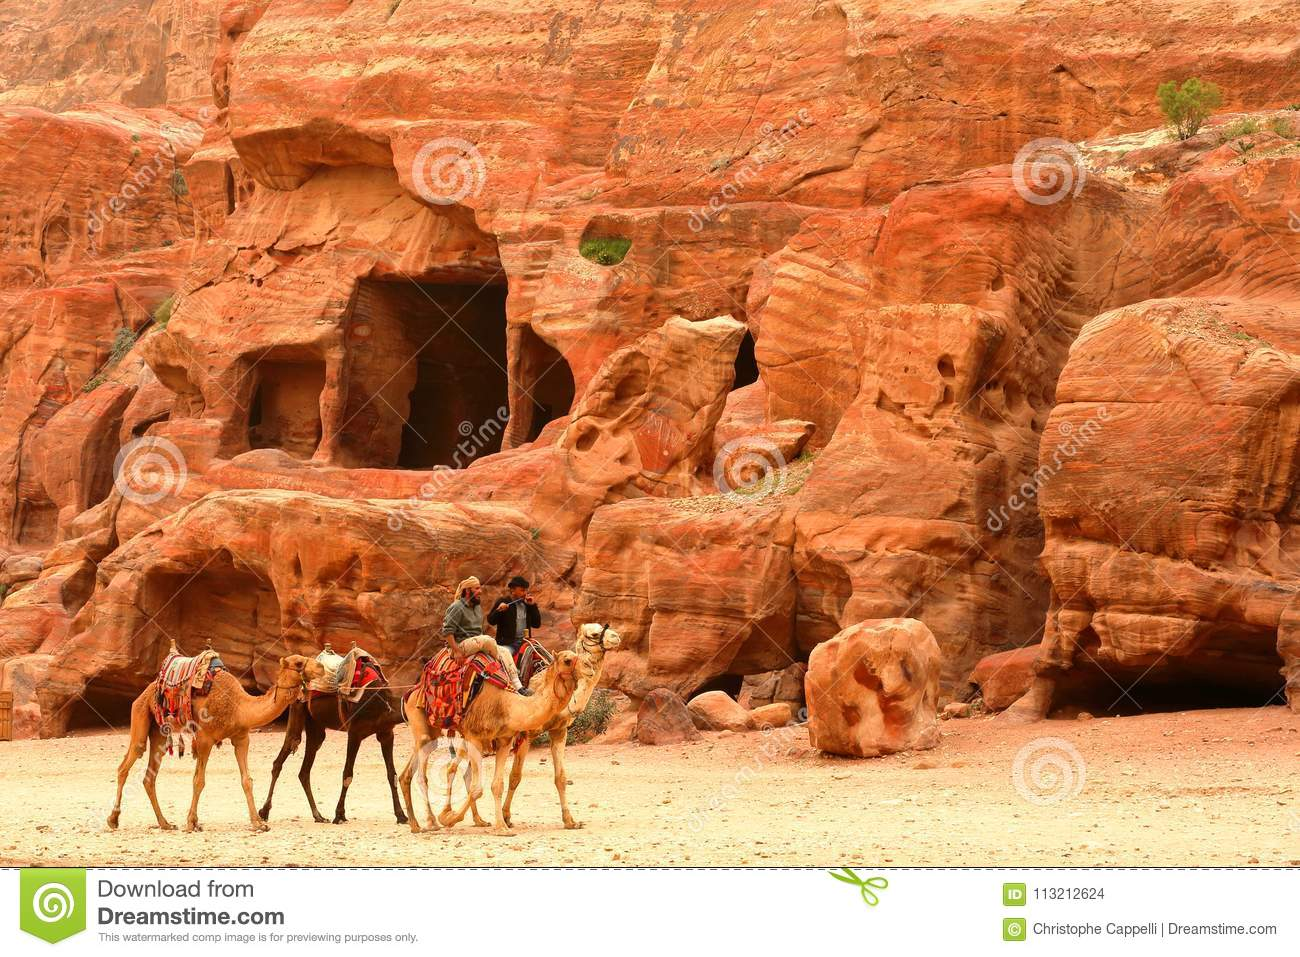 faefbd2fa3c PETRA, JORDAN - MARCH 13, 2016: Bedouins riding their camels with colorful  sandstones in the background